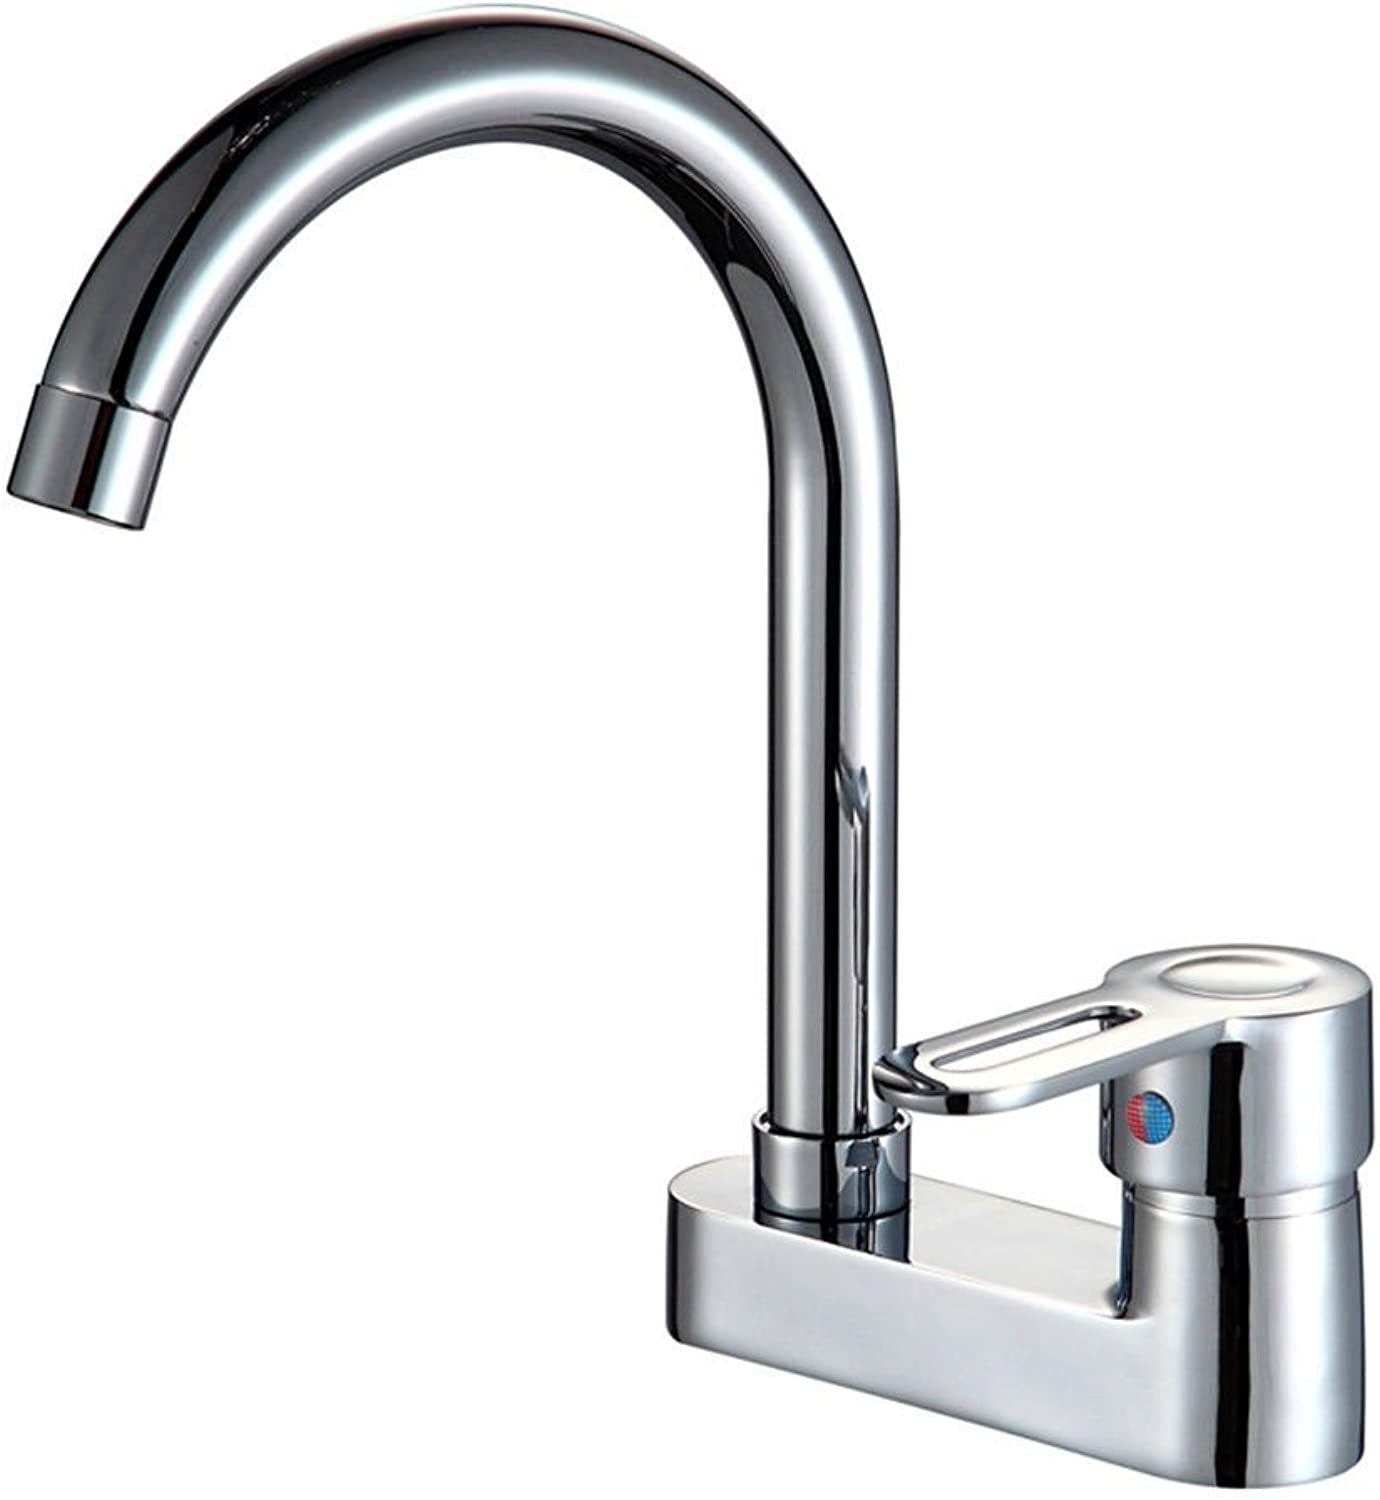 Lalaky Taps Faucet Kitchen Mixer Sink Waterfall Bathroom Mixer Basin Mixer Tap for Kitchen Bathroom and Washroom Hot and Cold Double Hole